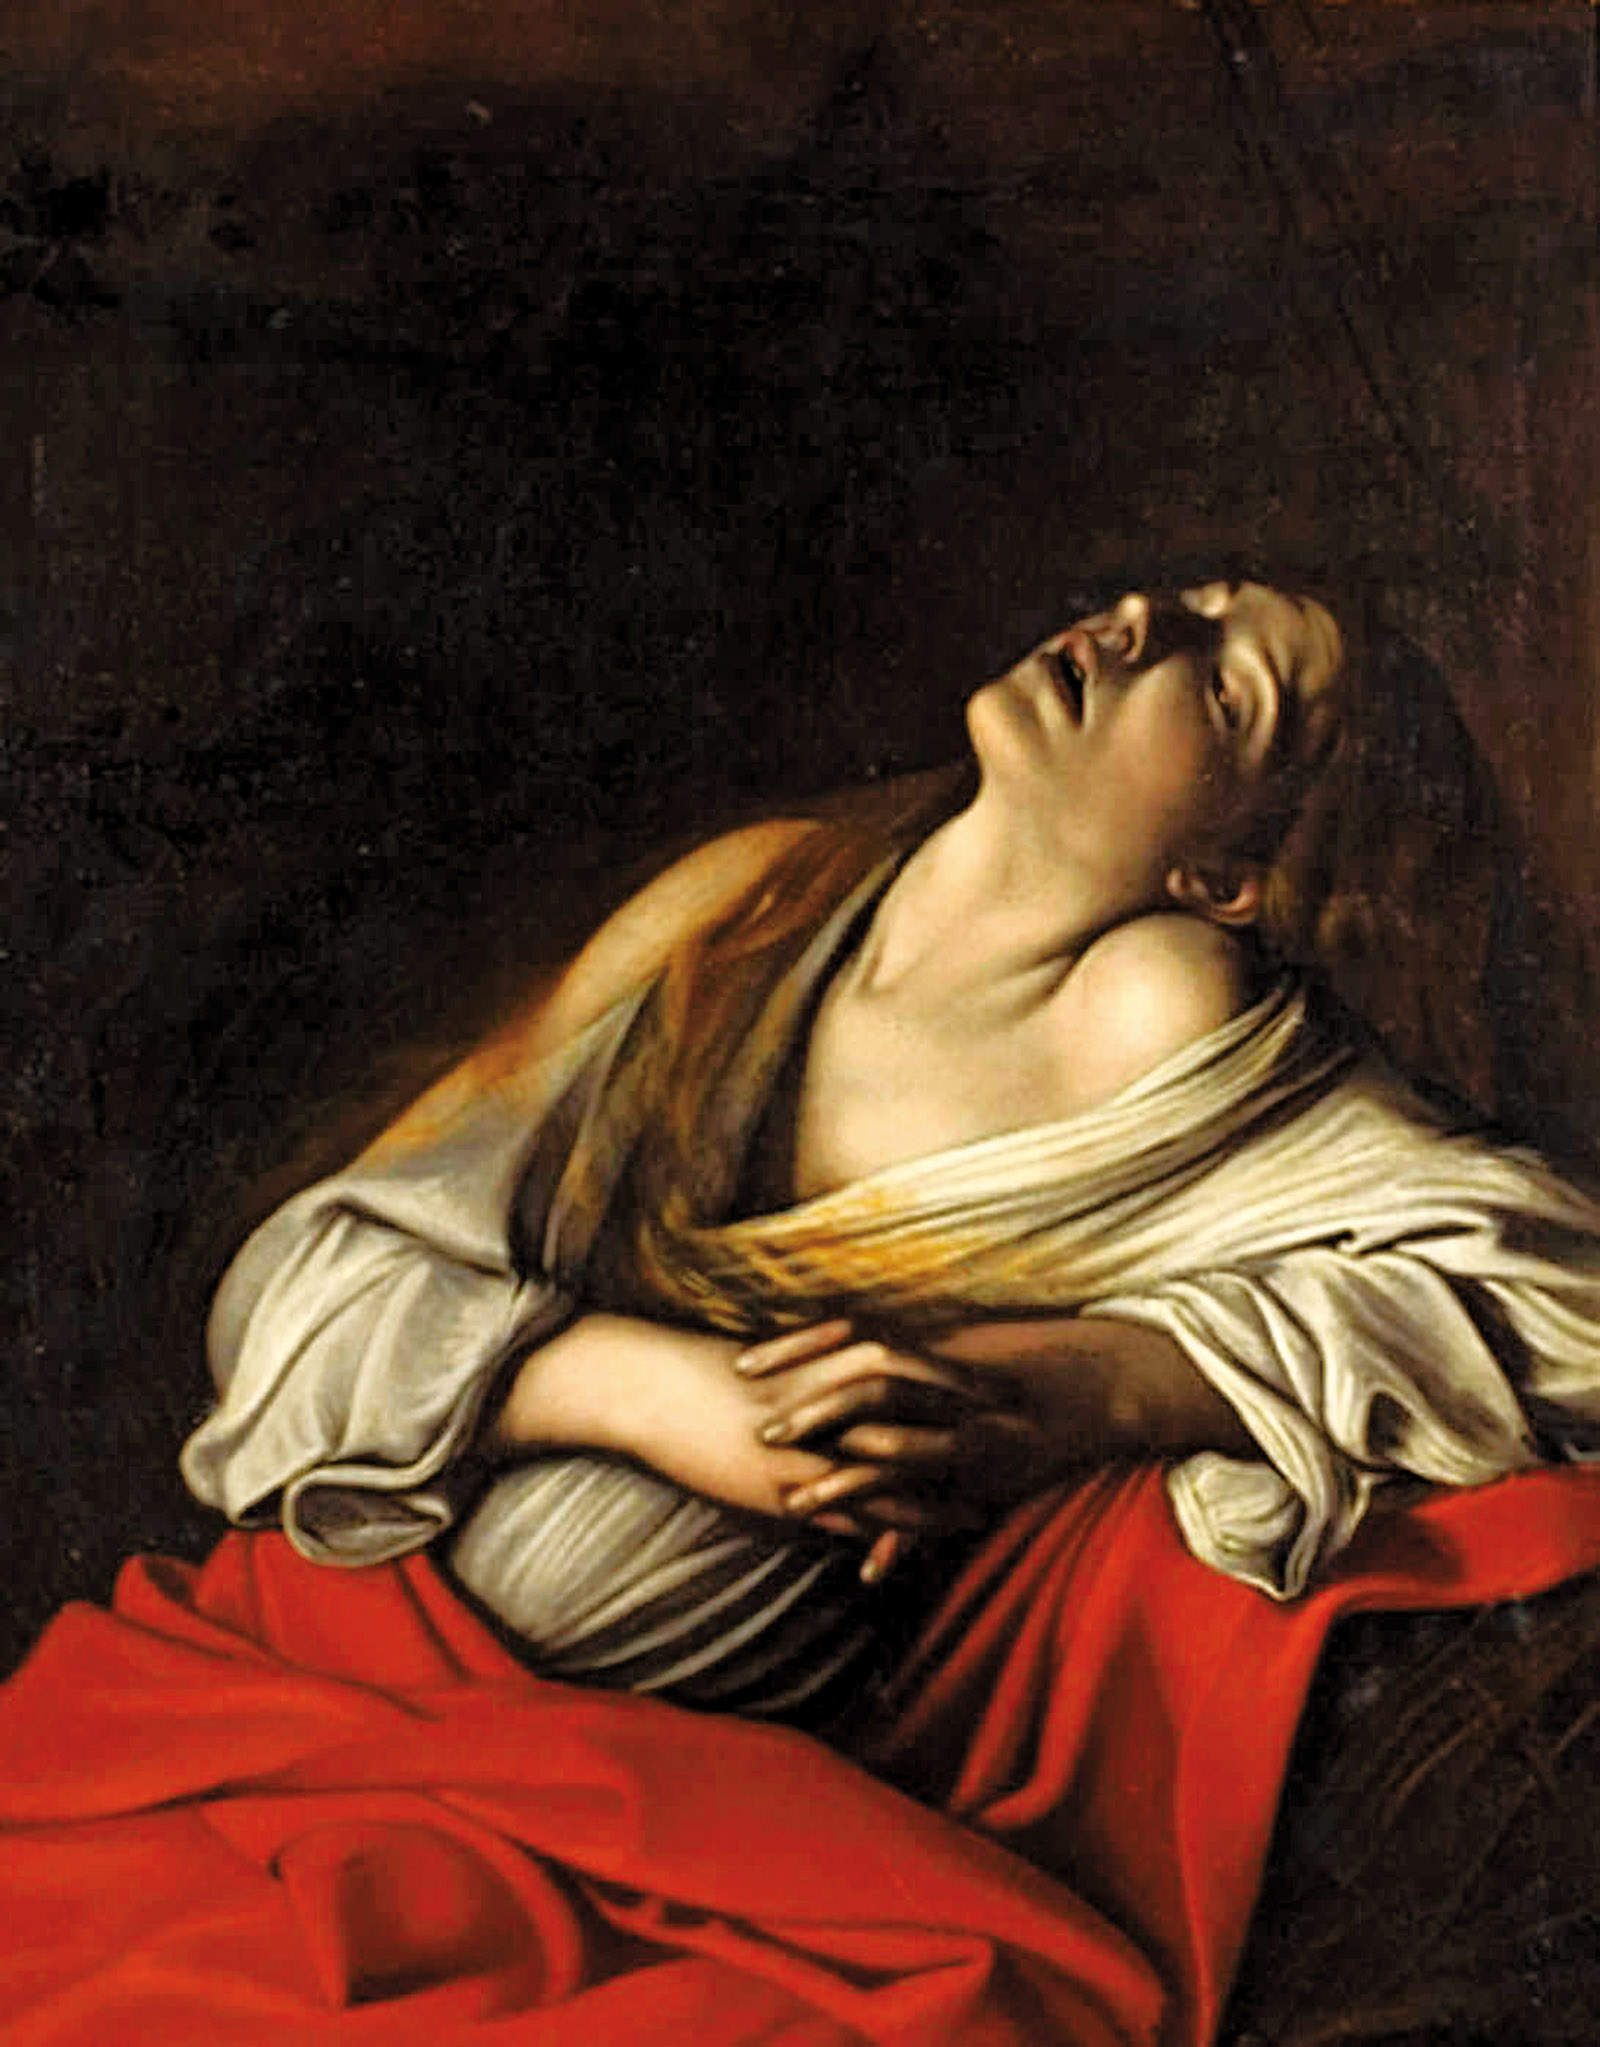 Caravaggio's painting, Mary Magdalene in Ecstasy, 1606